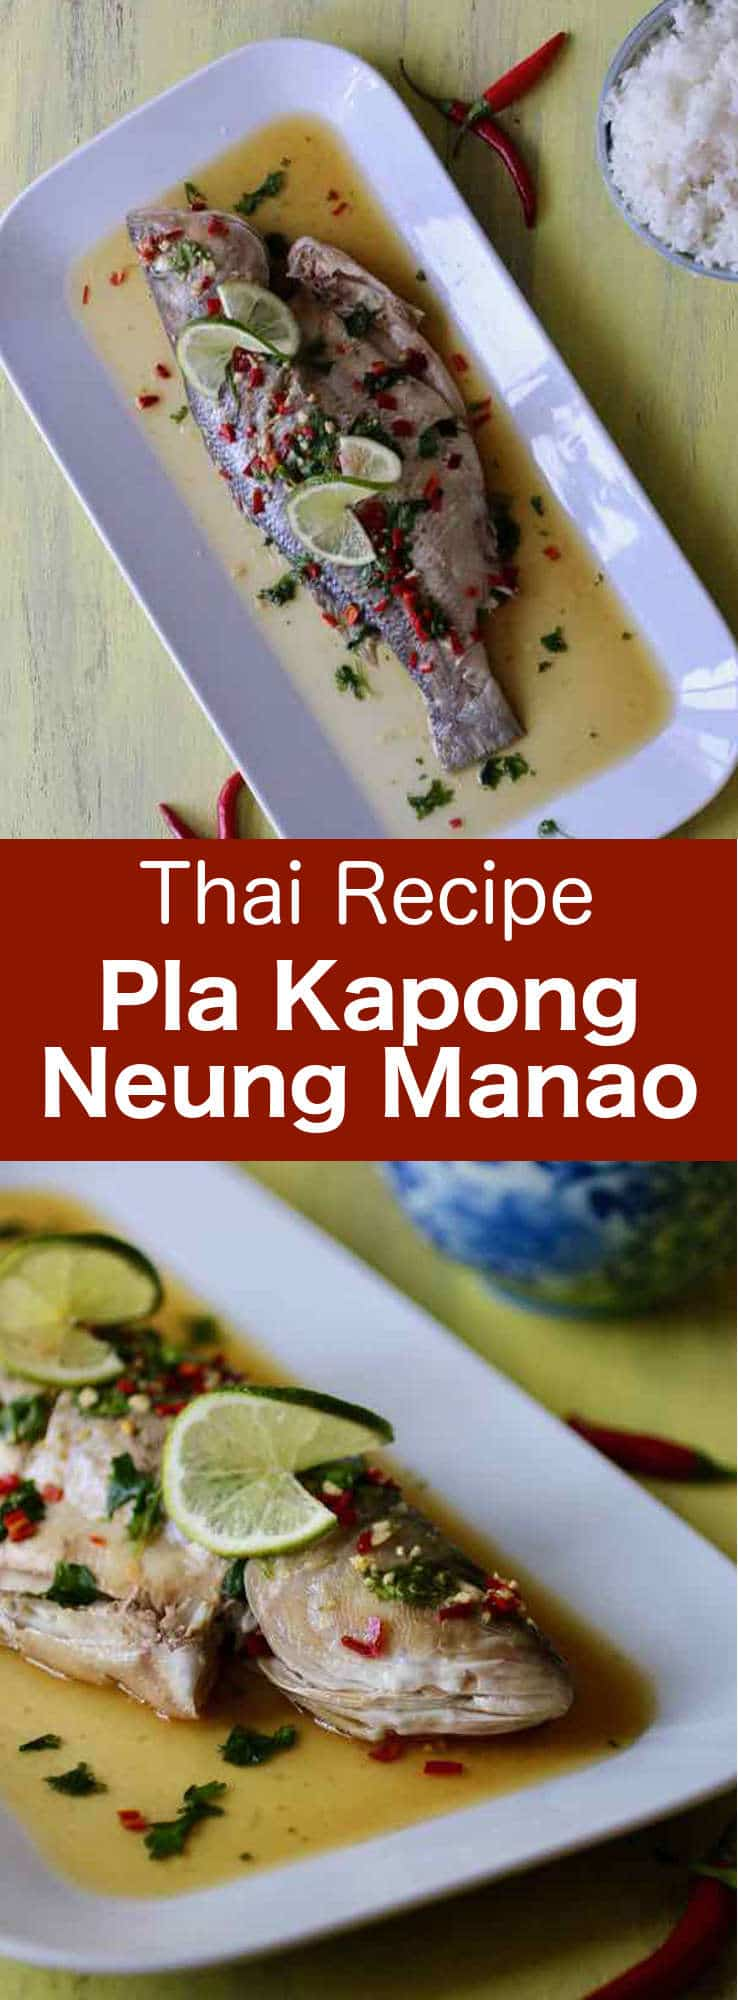 Pla kapong neung manao is a very simple Thai recipe, which consists of delicately steamed fish with a flavorful spicy citrusy sauce. #Thailand #ThaiCuisine #fish #WorldCuisine #196flavors